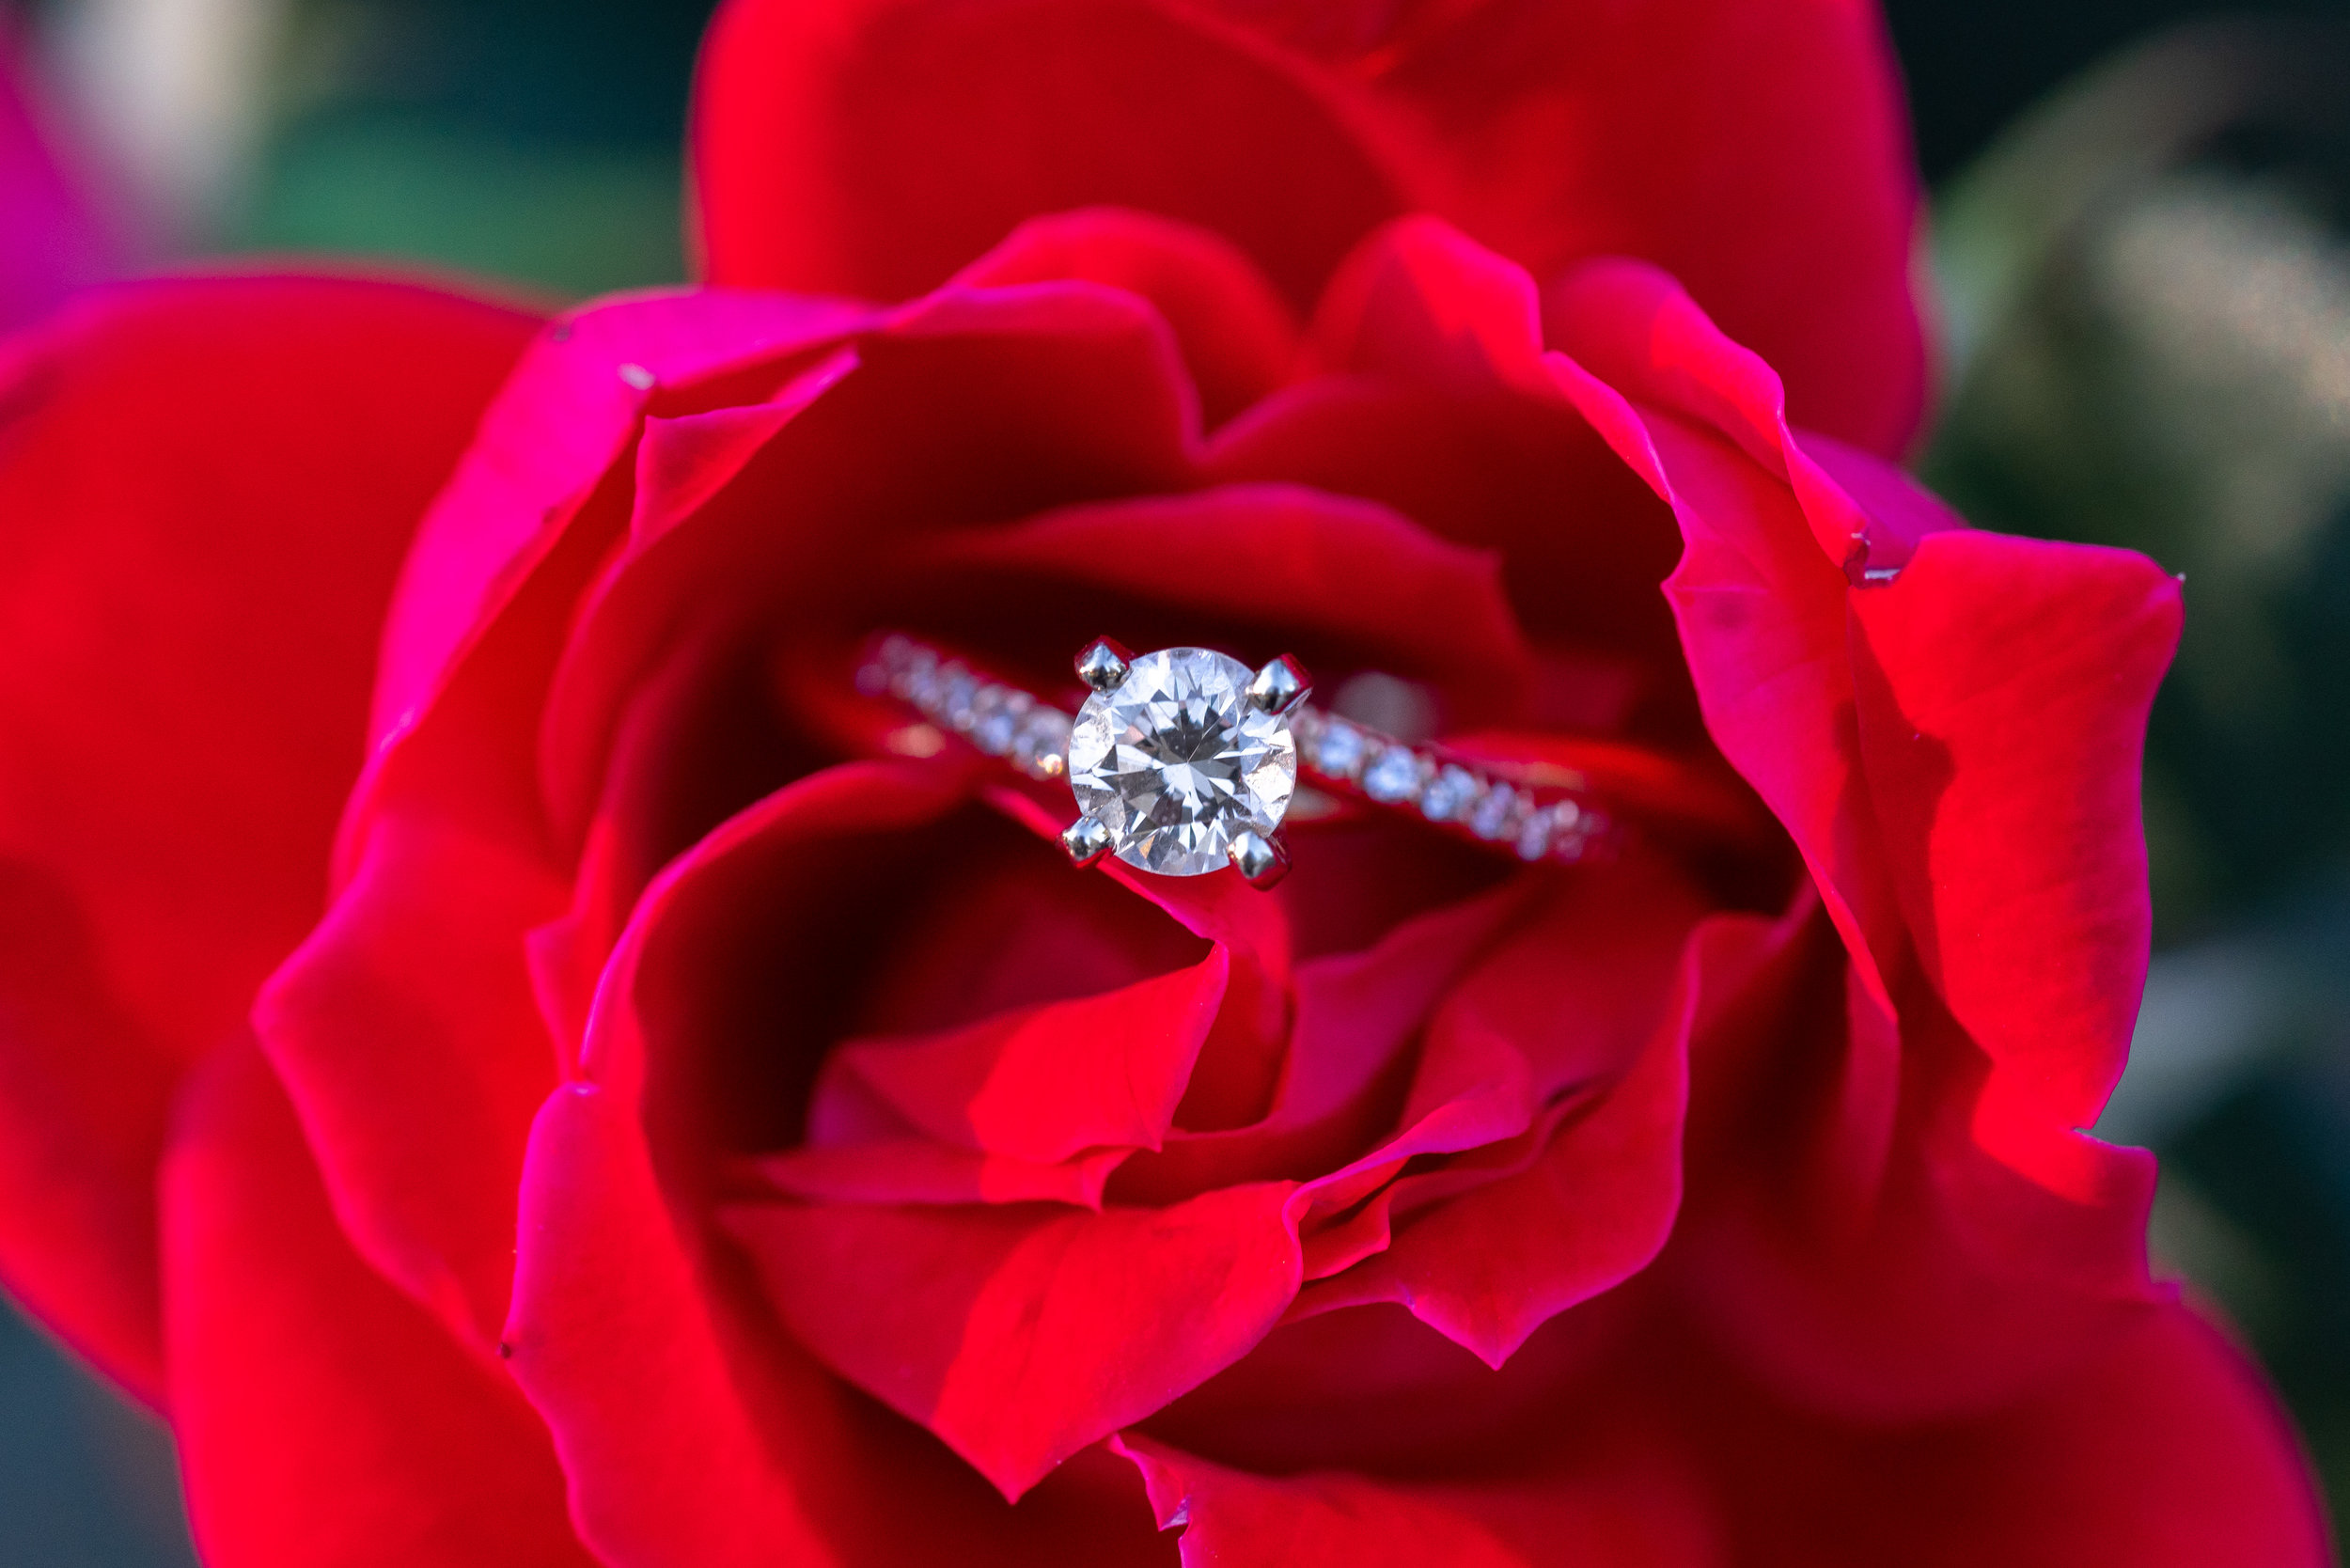 Round solitaire engagement ring in a red rose at Federal Hill Park in Baltimore